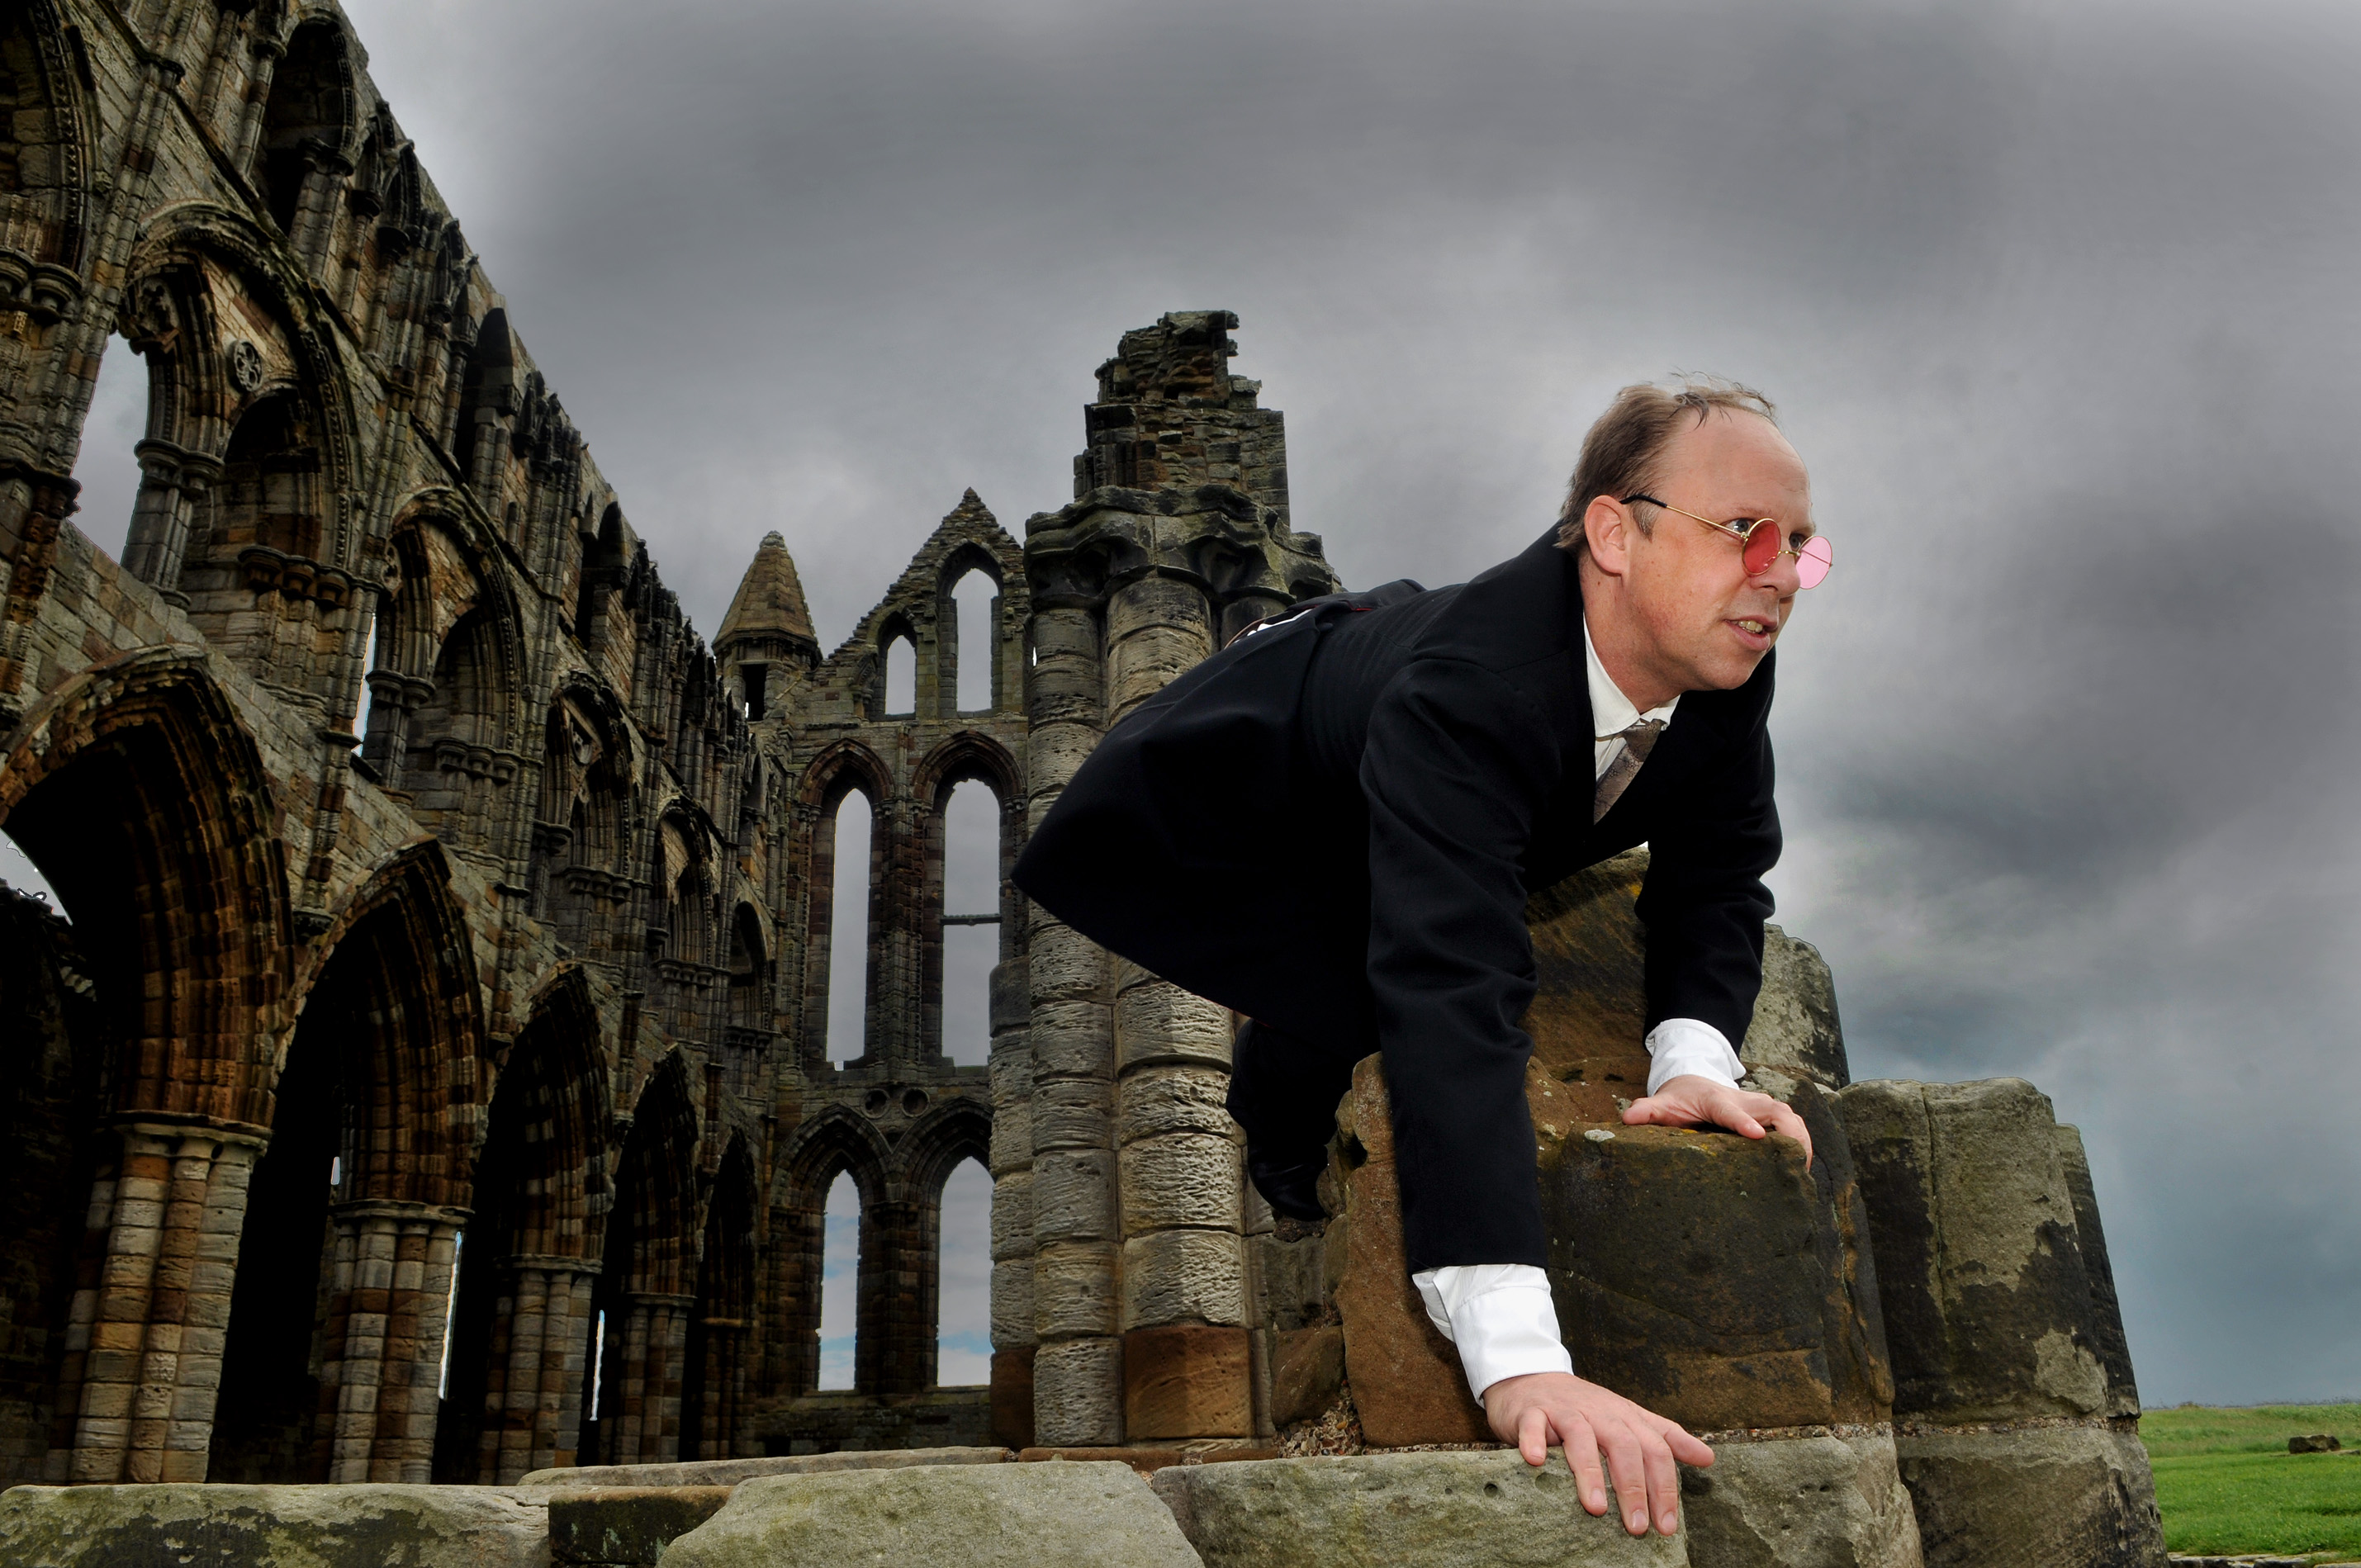 Dracula WhitbyAbbey 007 - English Heritage